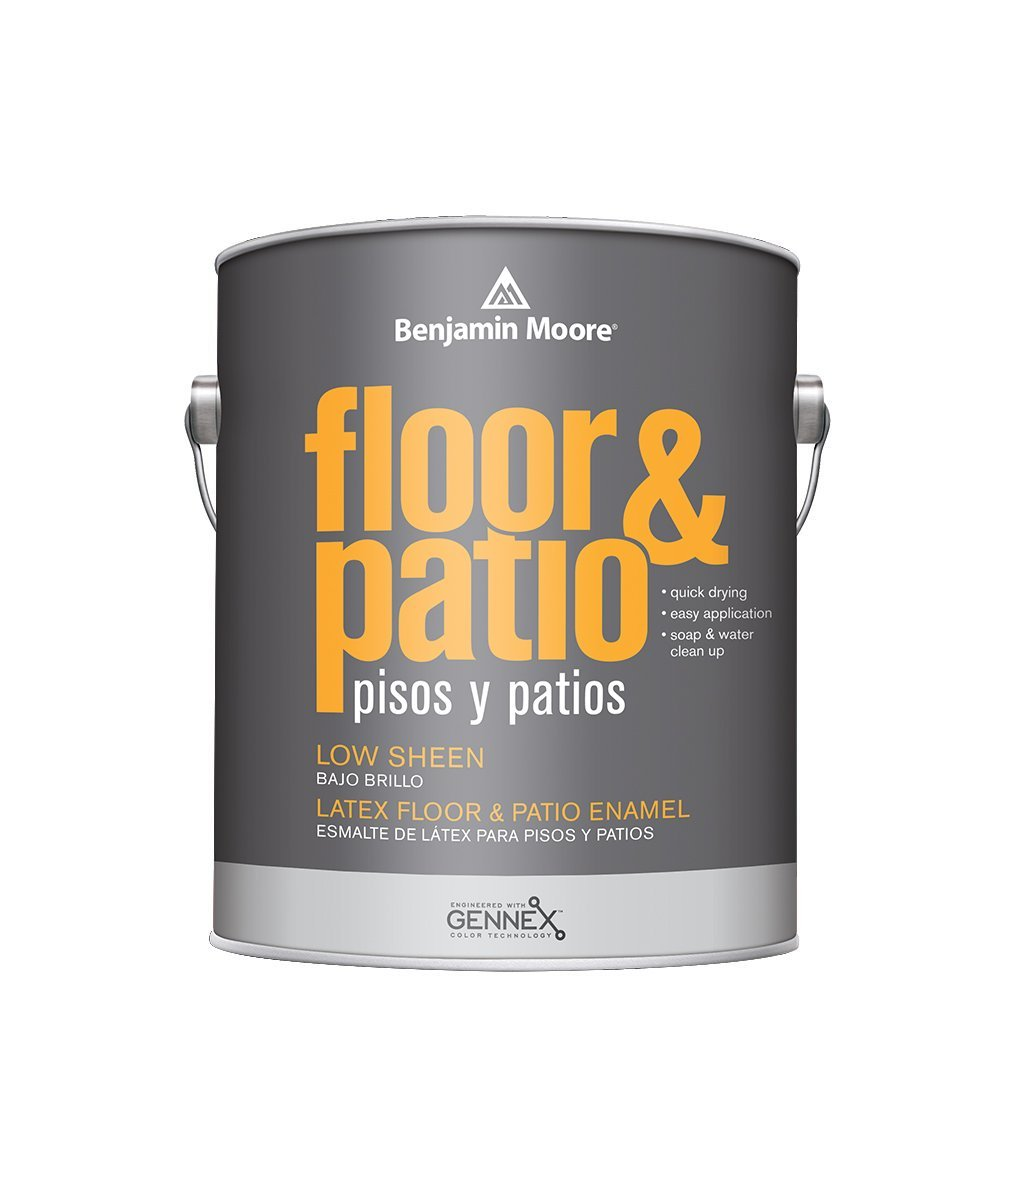 Benjamin Moore floor and patio low sheen Interior Paint available at Creative Paint in San Francisco, South Bay & East Bay.